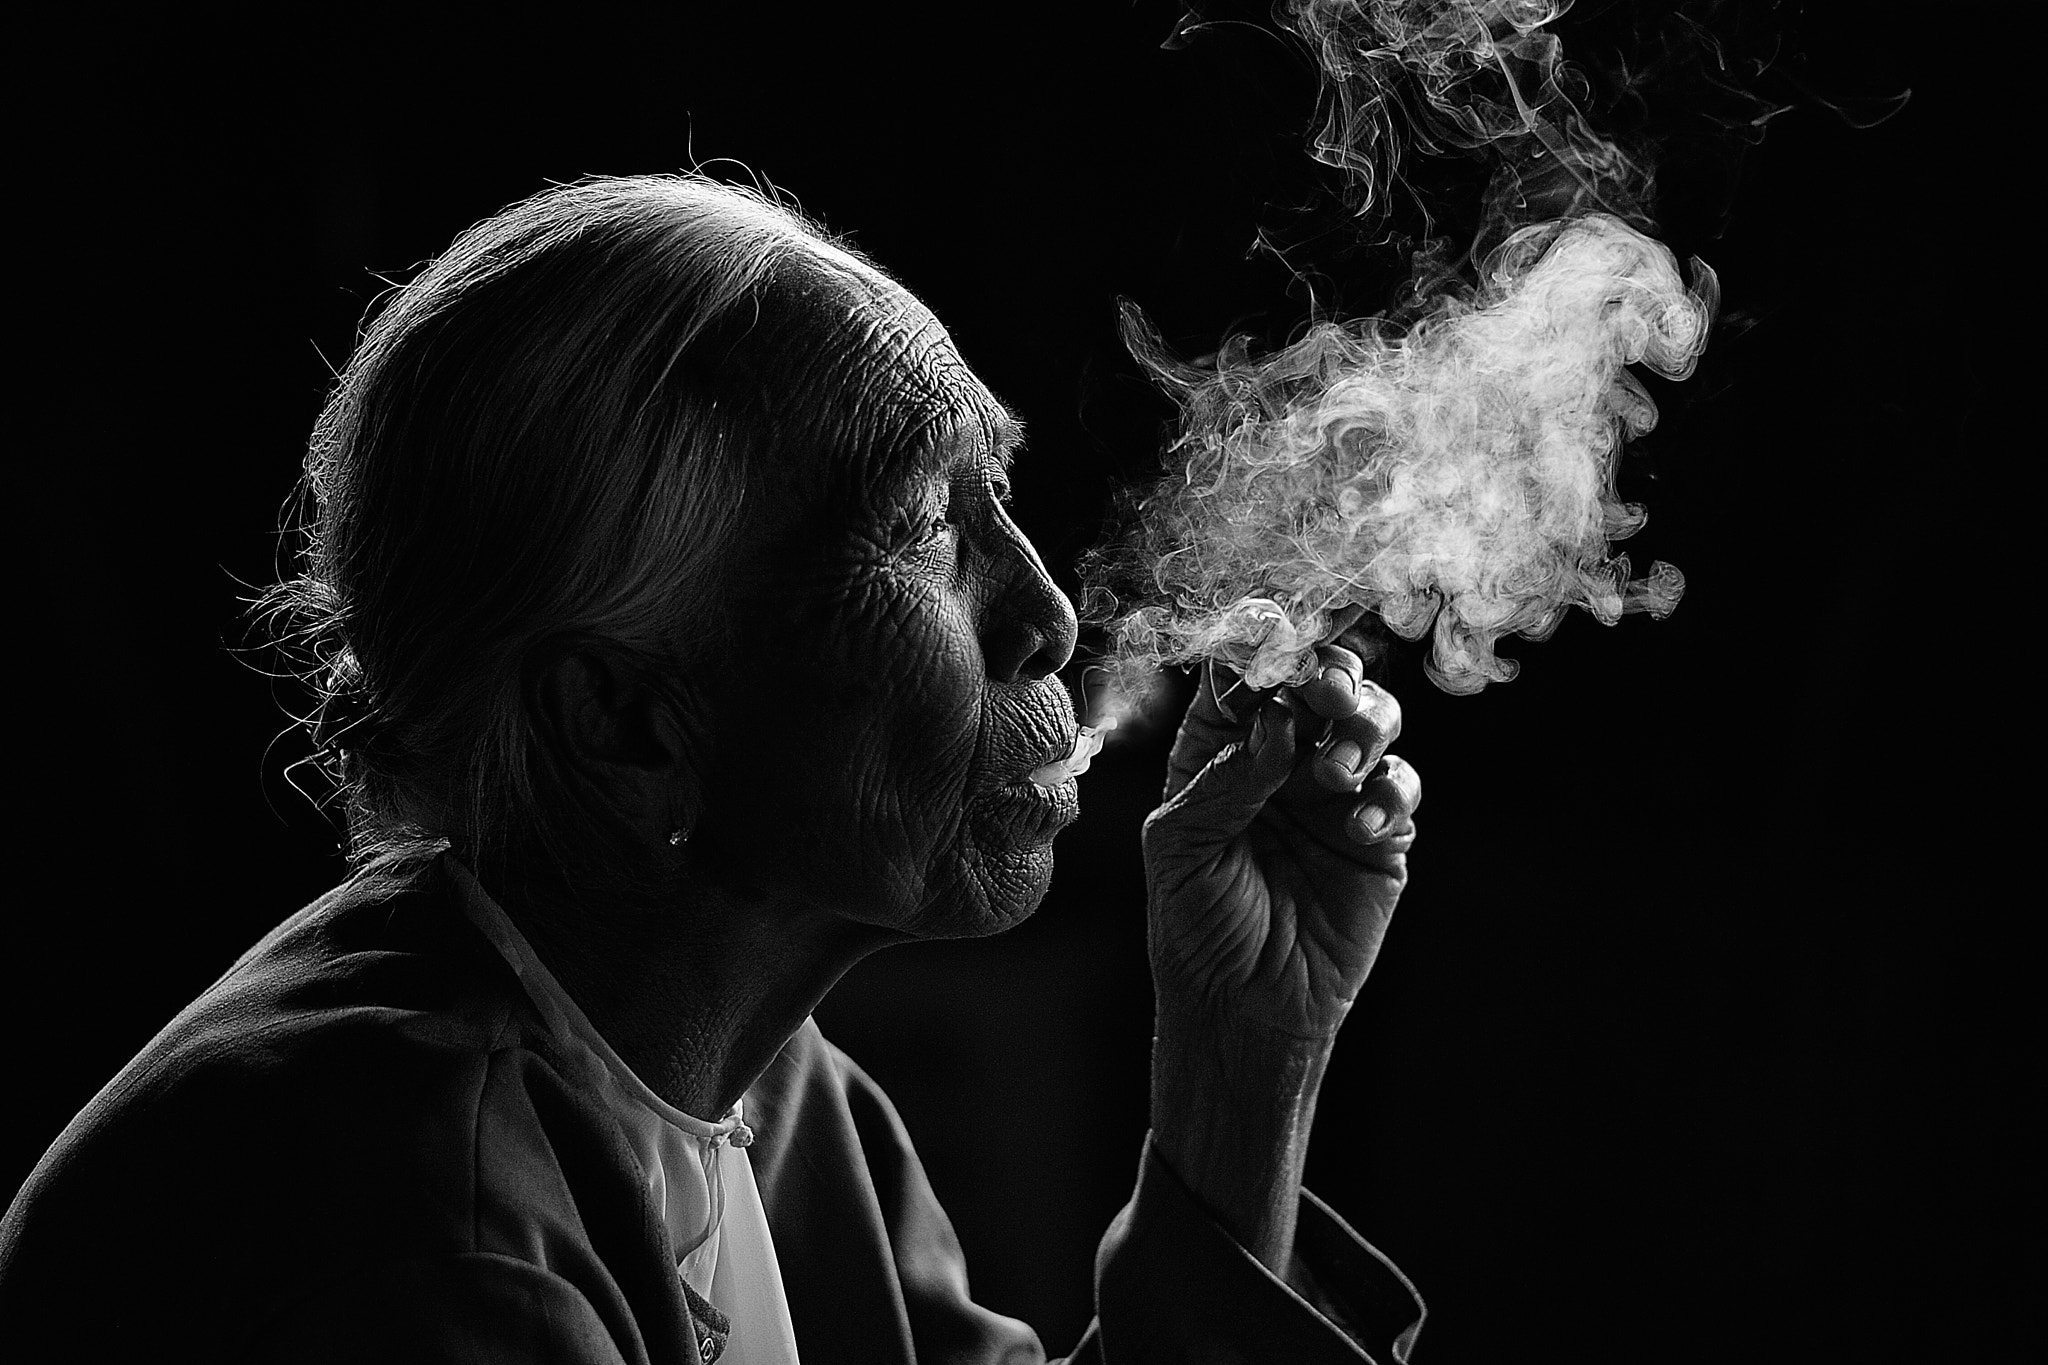 Photograph Smokey B & W by Vichaya Pop on 500px